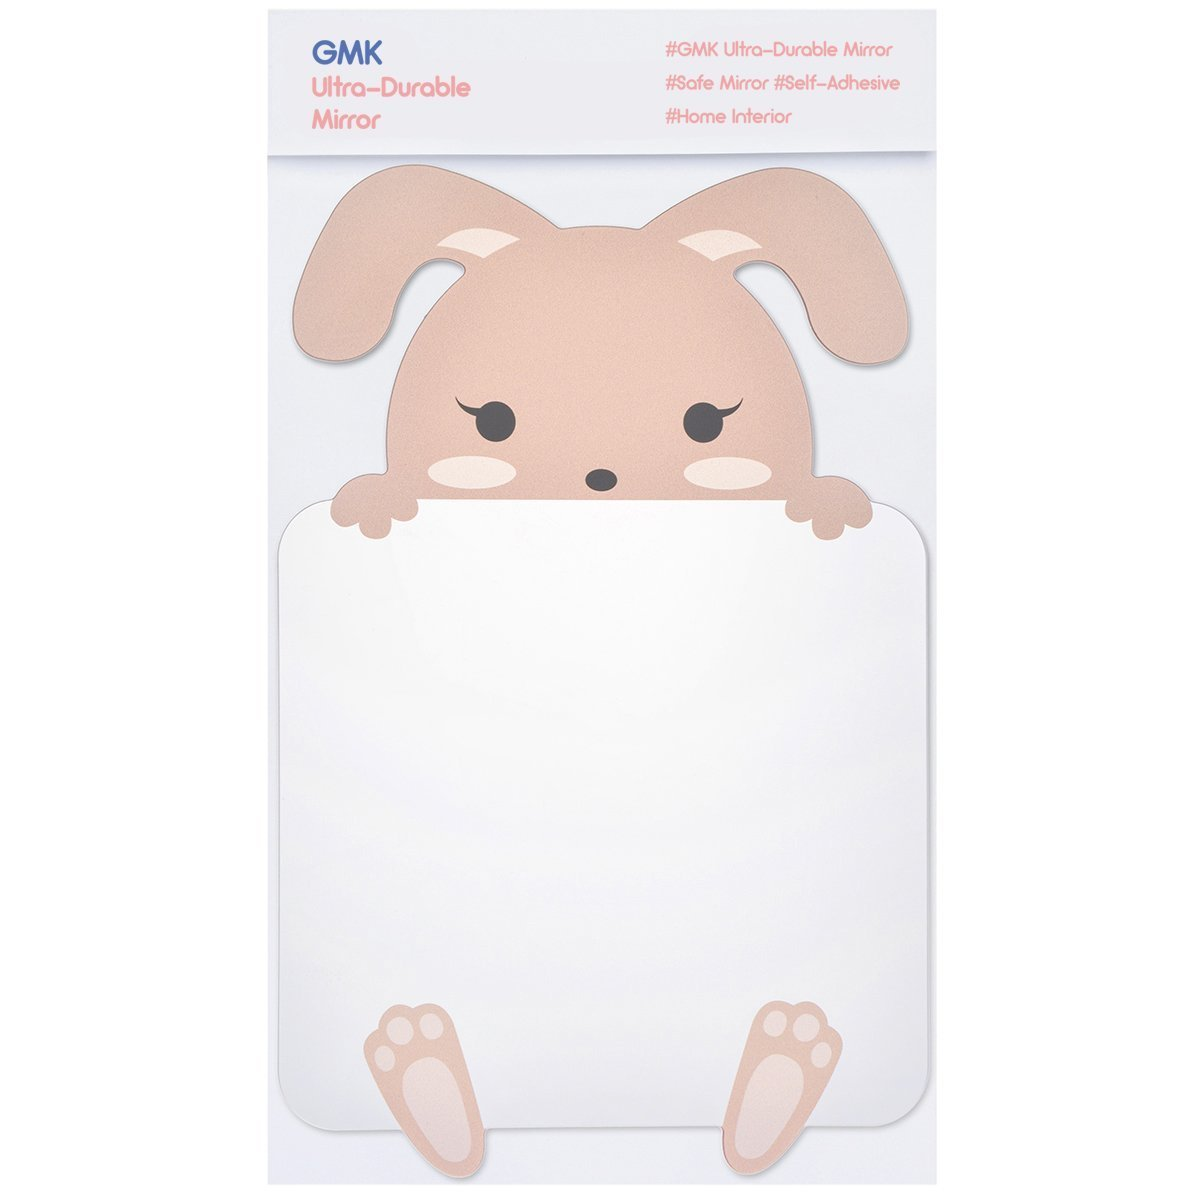 GMK Character Acrylic Mirror with Shock Resistant Coating for Safety, Animal Designs, Easily applicable and Self-adhesive, 7.3 x 11.2 inches, For Kids' Rooms and Kindergartens (Rabbit)